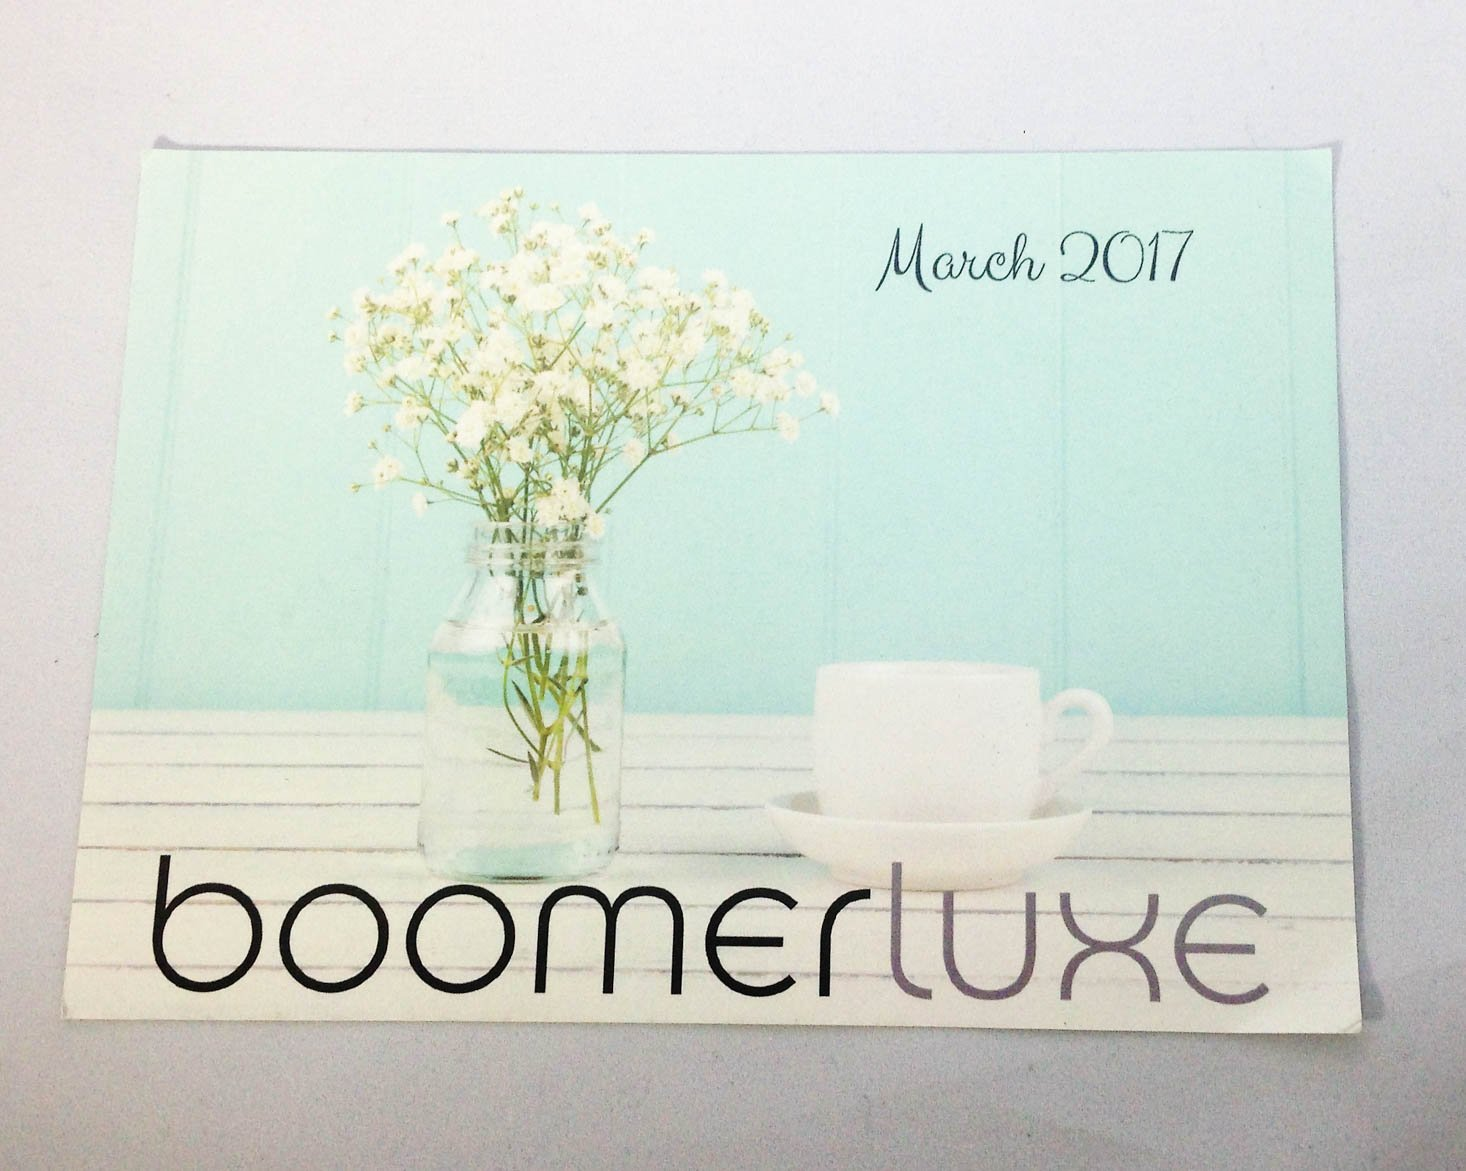 Boomerluxe-March-2017-3